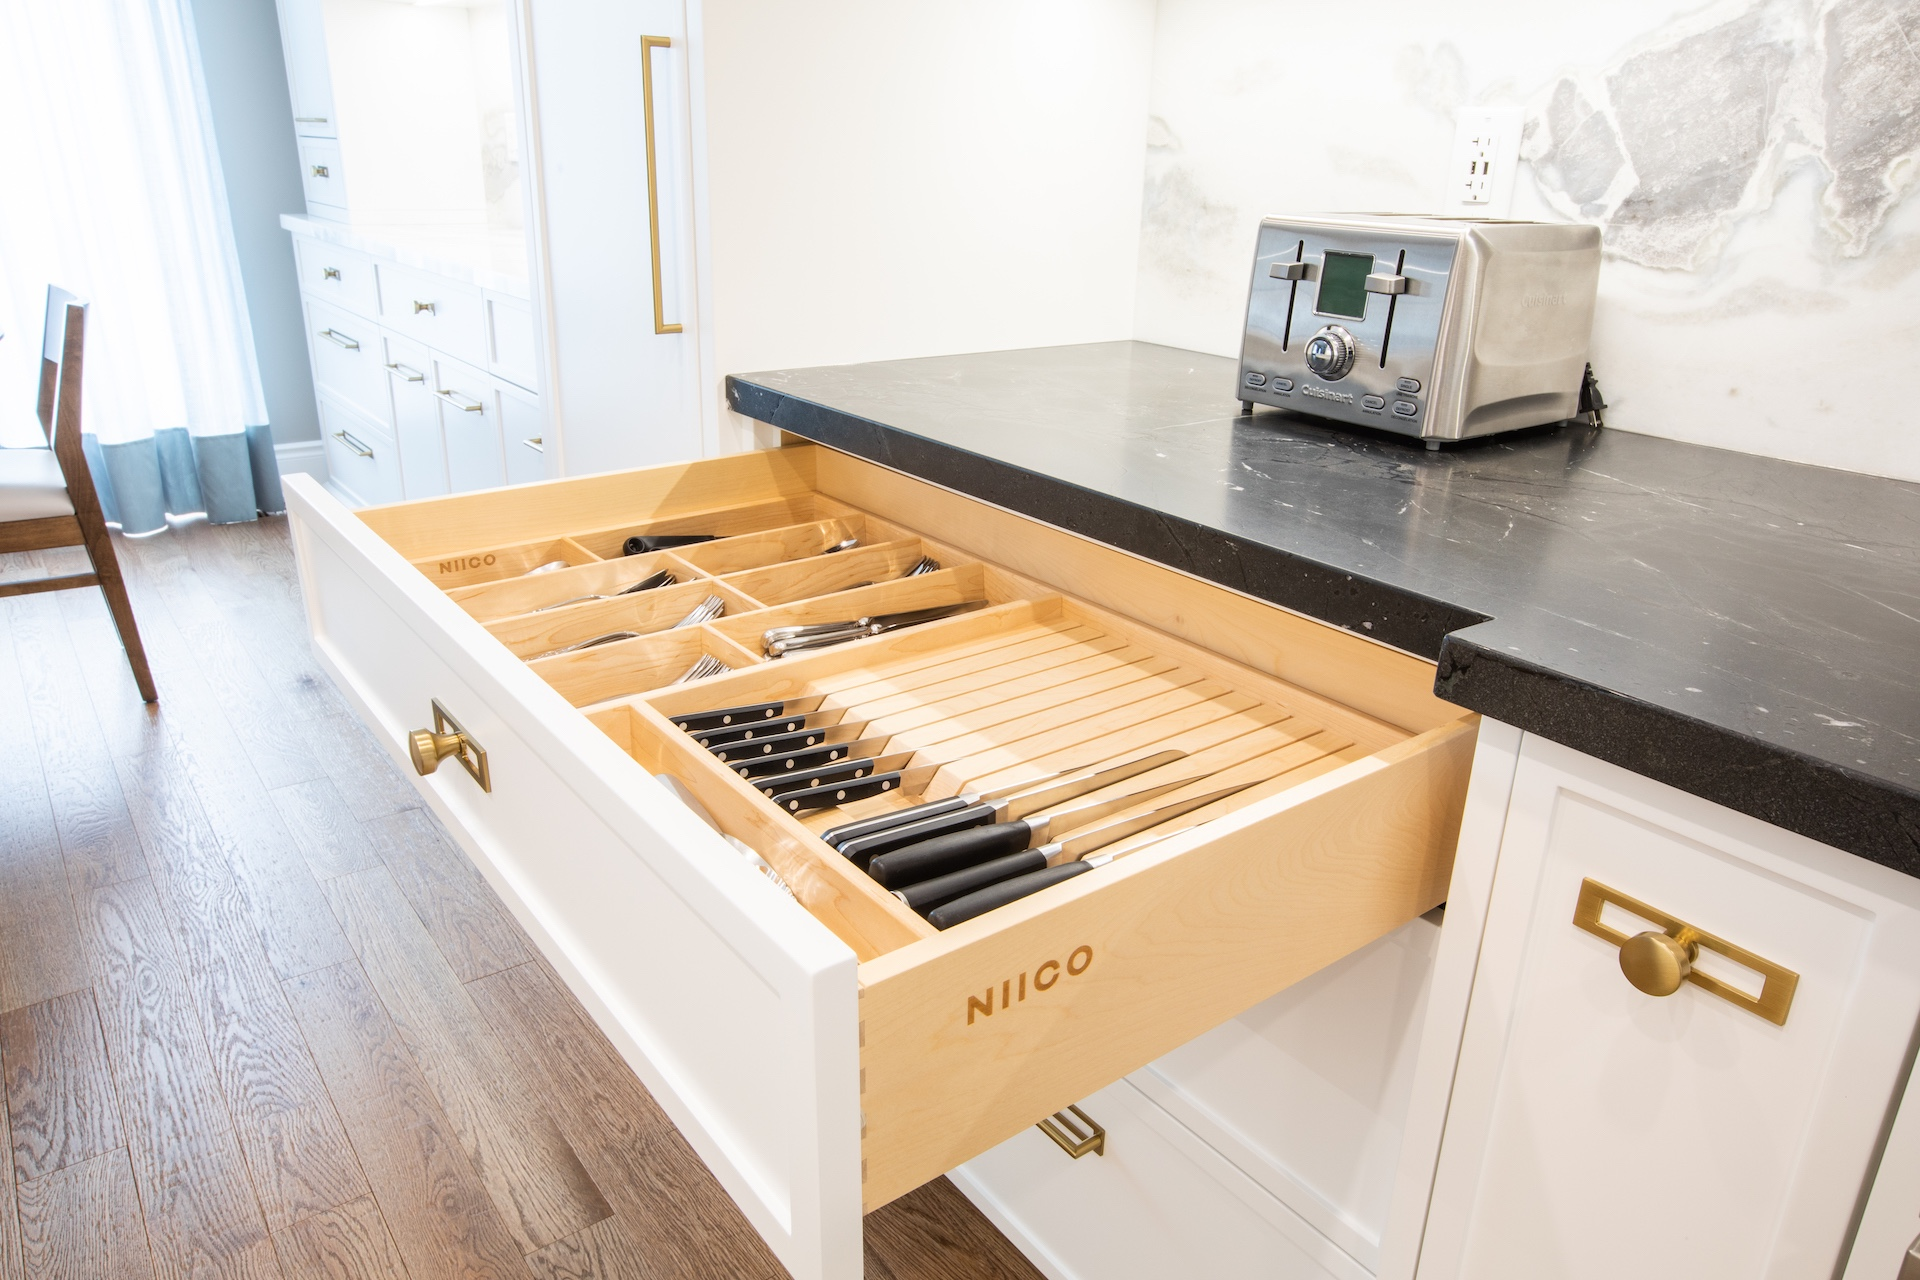 Drawer with knives and NIICO logo